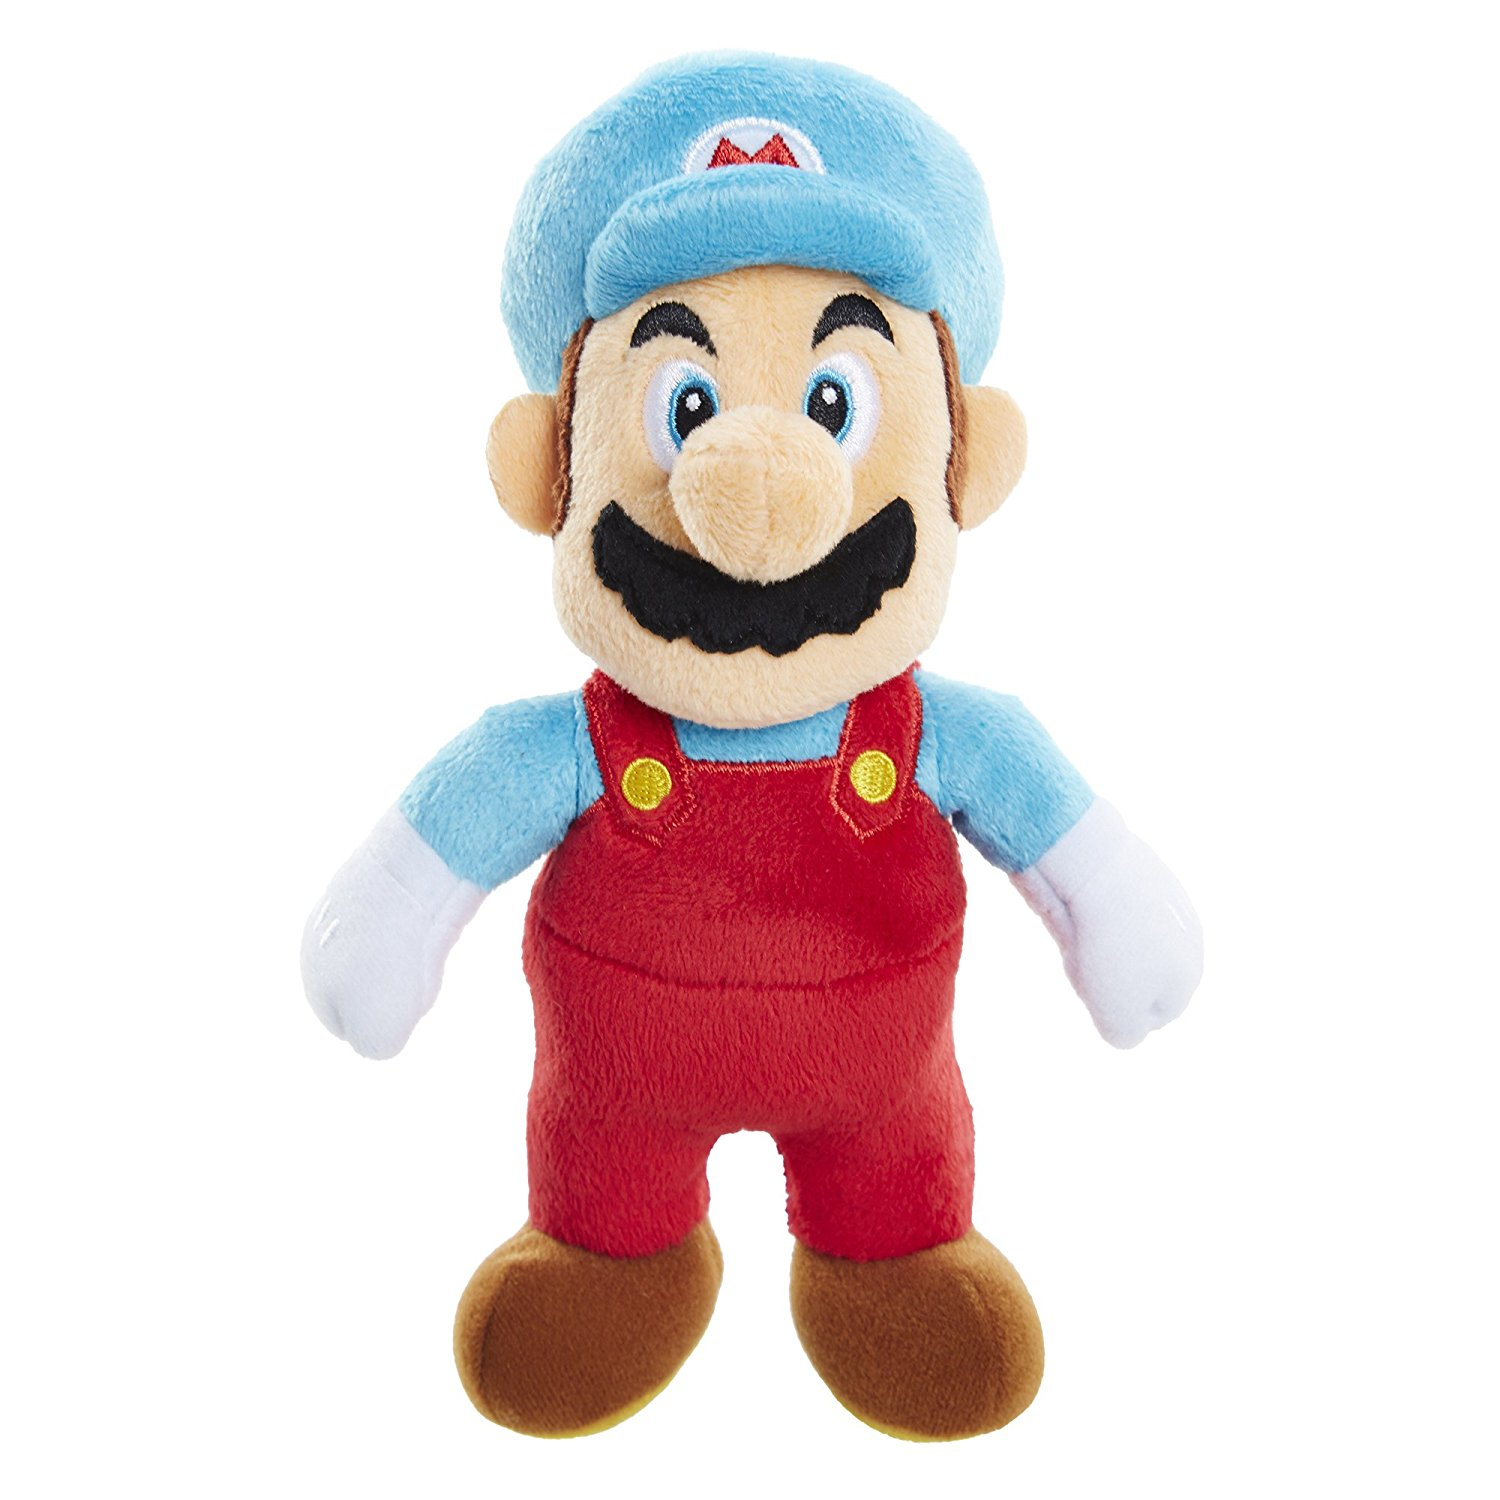 "NINTENDO Ice Mario Plush, Plush figure is 7.5"" tall By World of Nintendo"